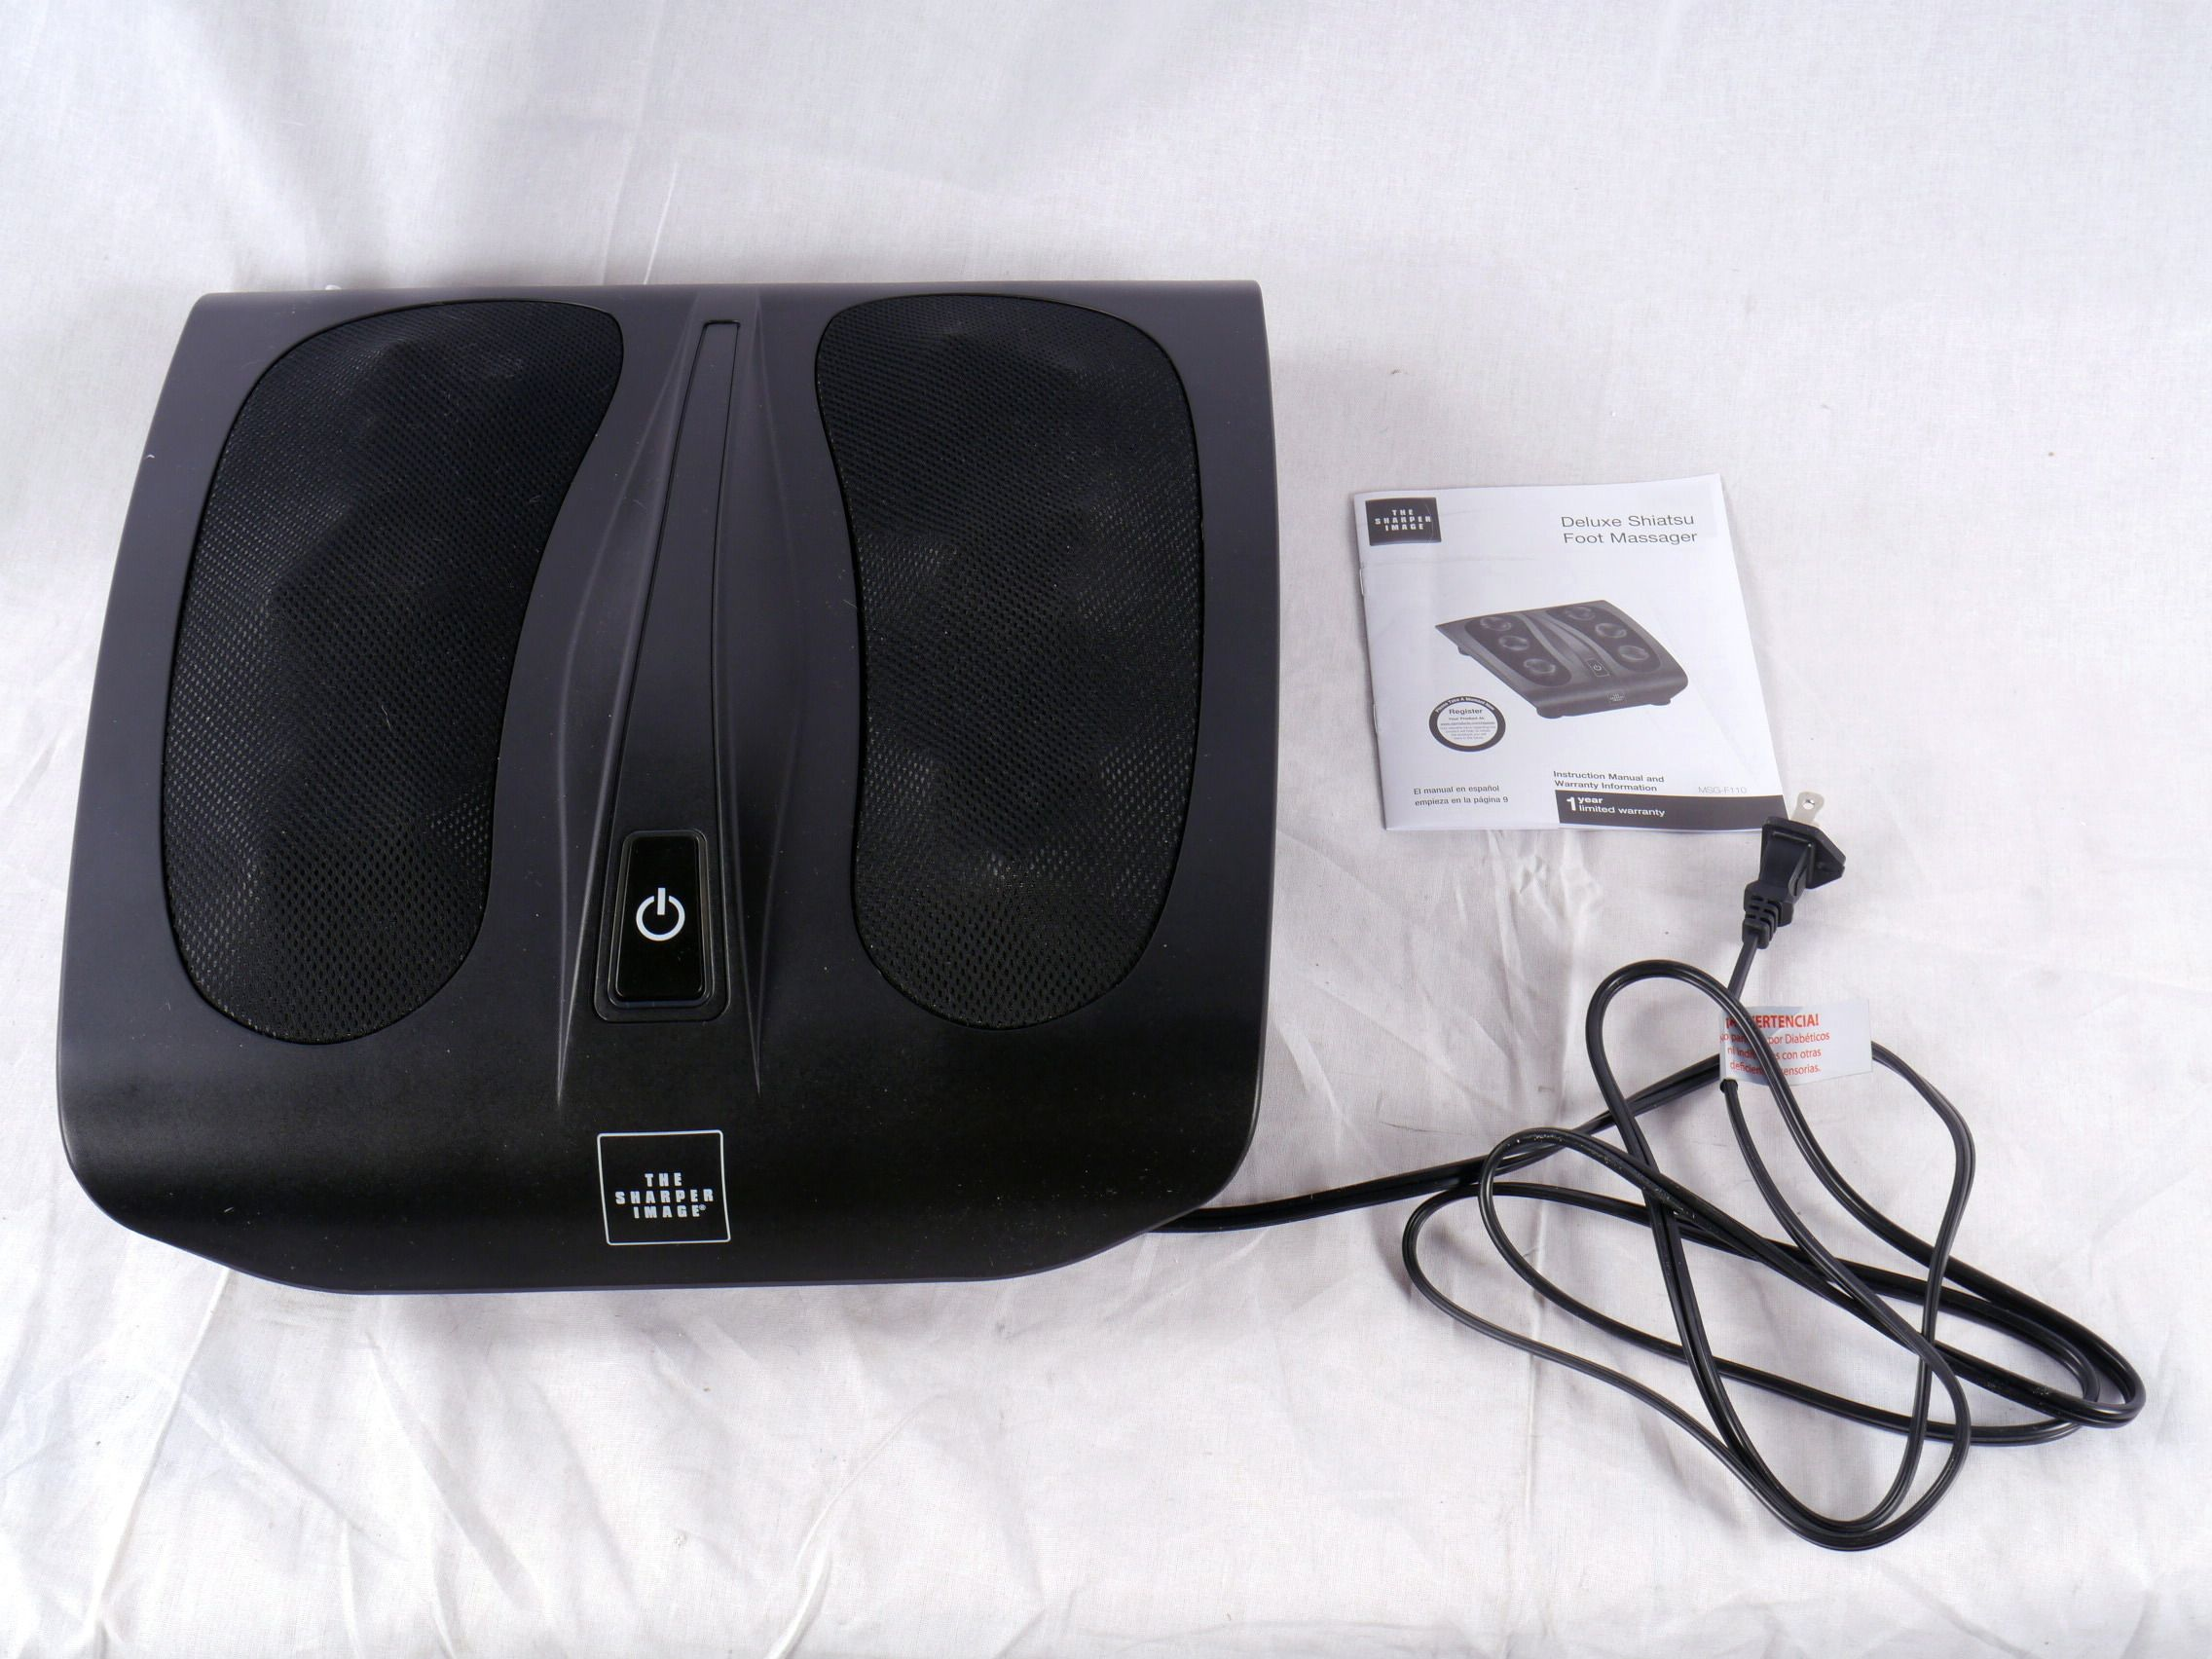 The Sharper Image Deep Kneading Shiatsu Foot Massager